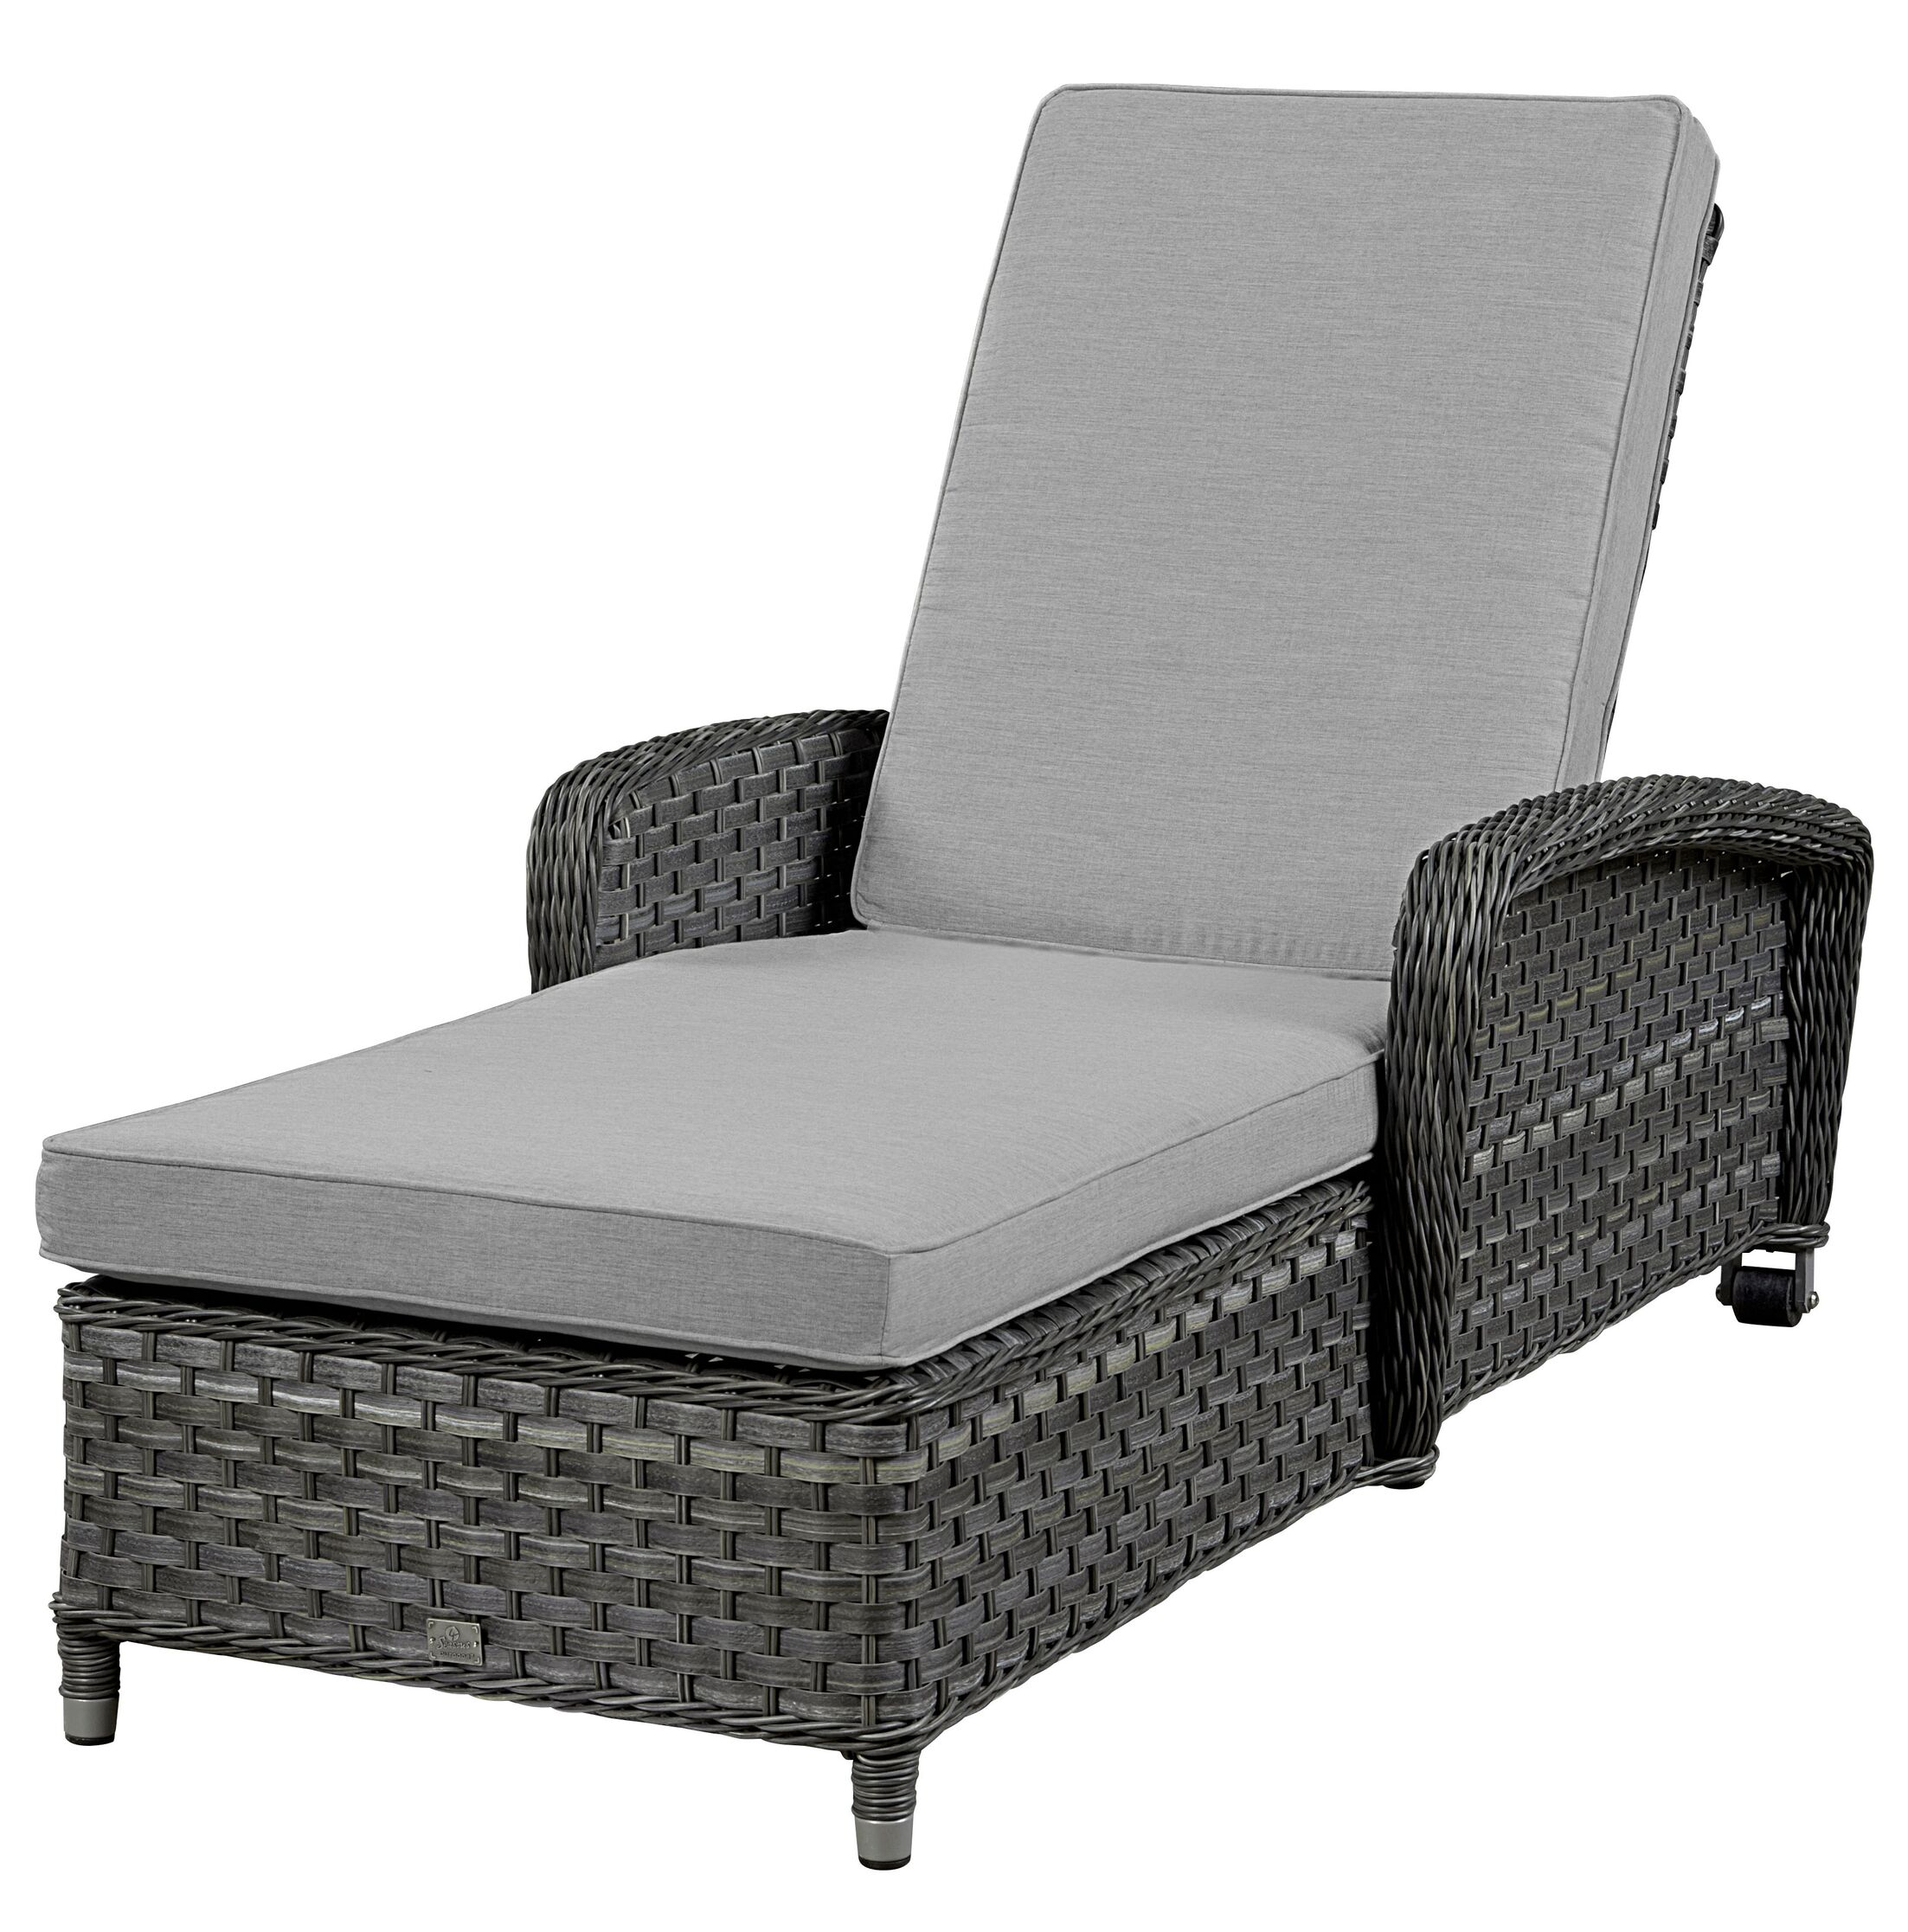 Chaise Lounge with Cushion Frame Finish: Grey, Fabric: Flagship Mist